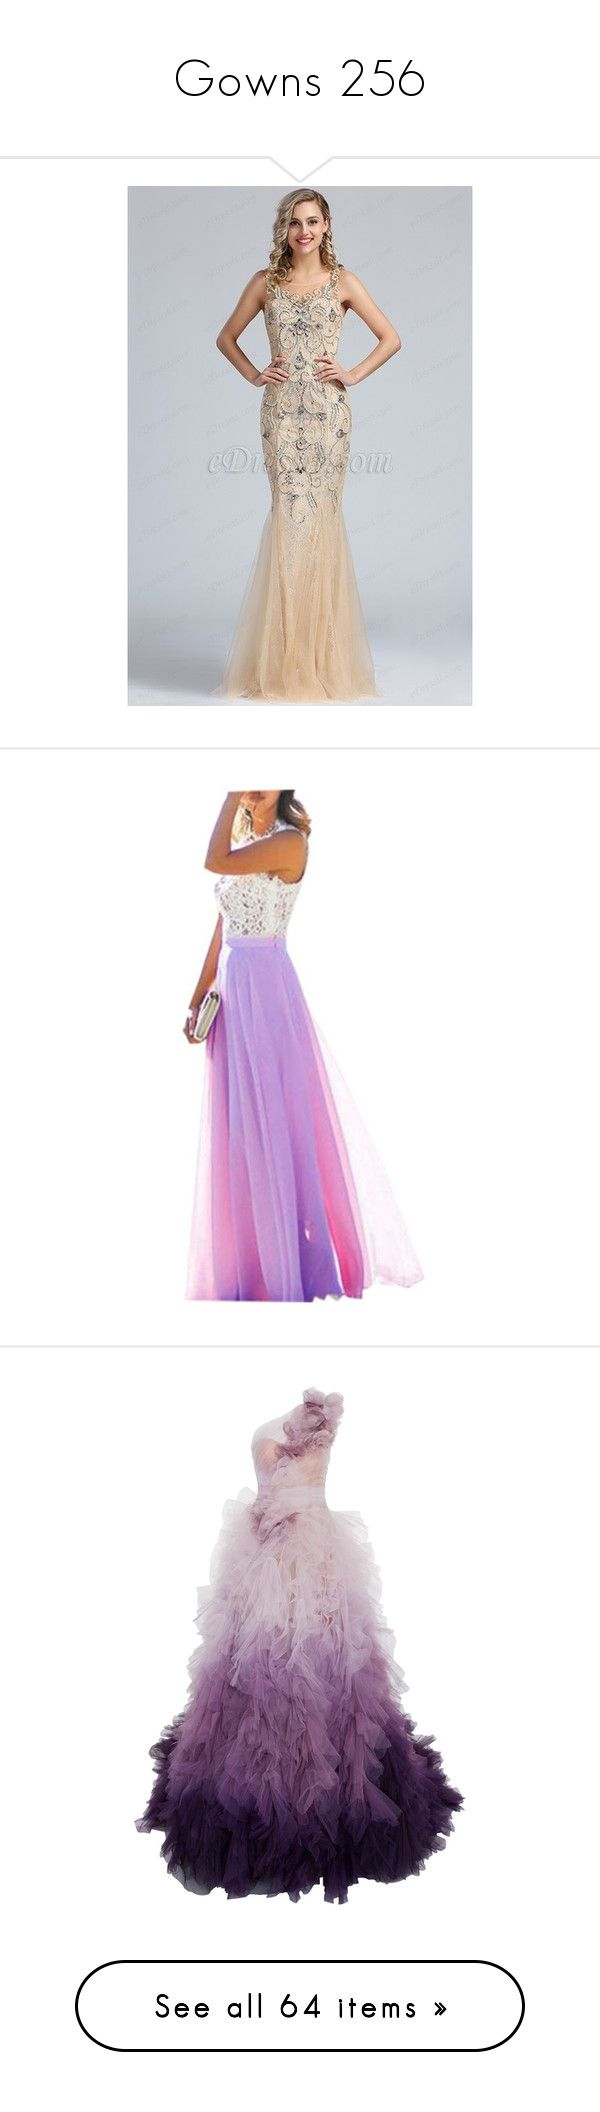 """""""Gowns 256"""" by singlemom ❤ liked on Polyvore featuring dresses, beige prom dresses, sleeveless prom dress, beige cocktail dress, no sleeve dress, sleeveless dress, purple, white chiffon dress, white evening dresses and prom dresses"""